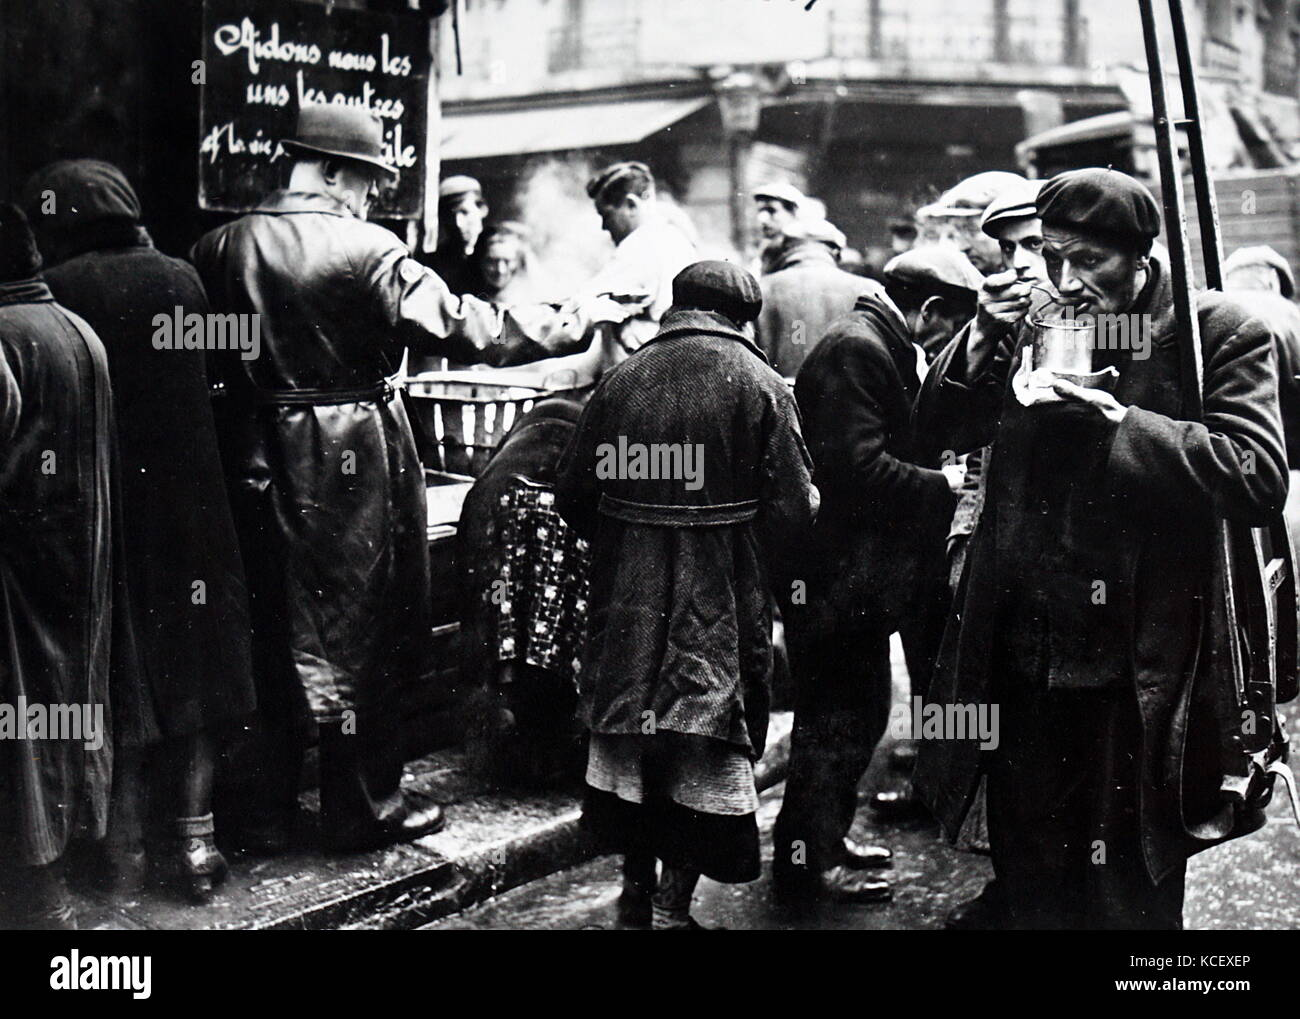 Photograph of a French soup kitchen distributes food to hungry people, in Paris, during the German occupation 1941. - Stock Image